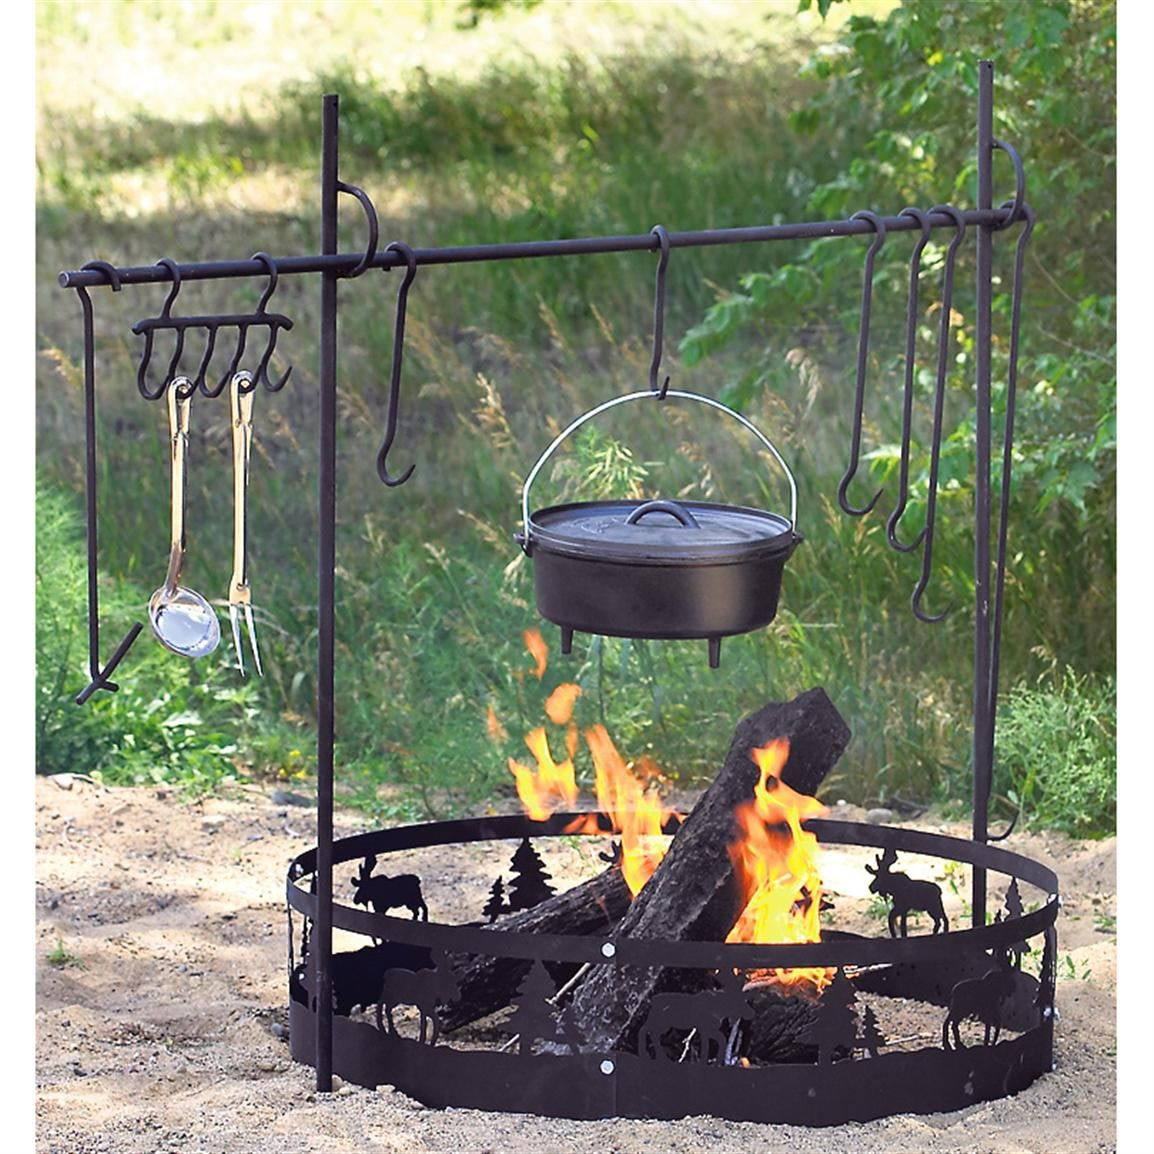 Fire Pit Cooking Accessories Campfire Cooking Equipment Fire Pit Cooking Campfire Cooking